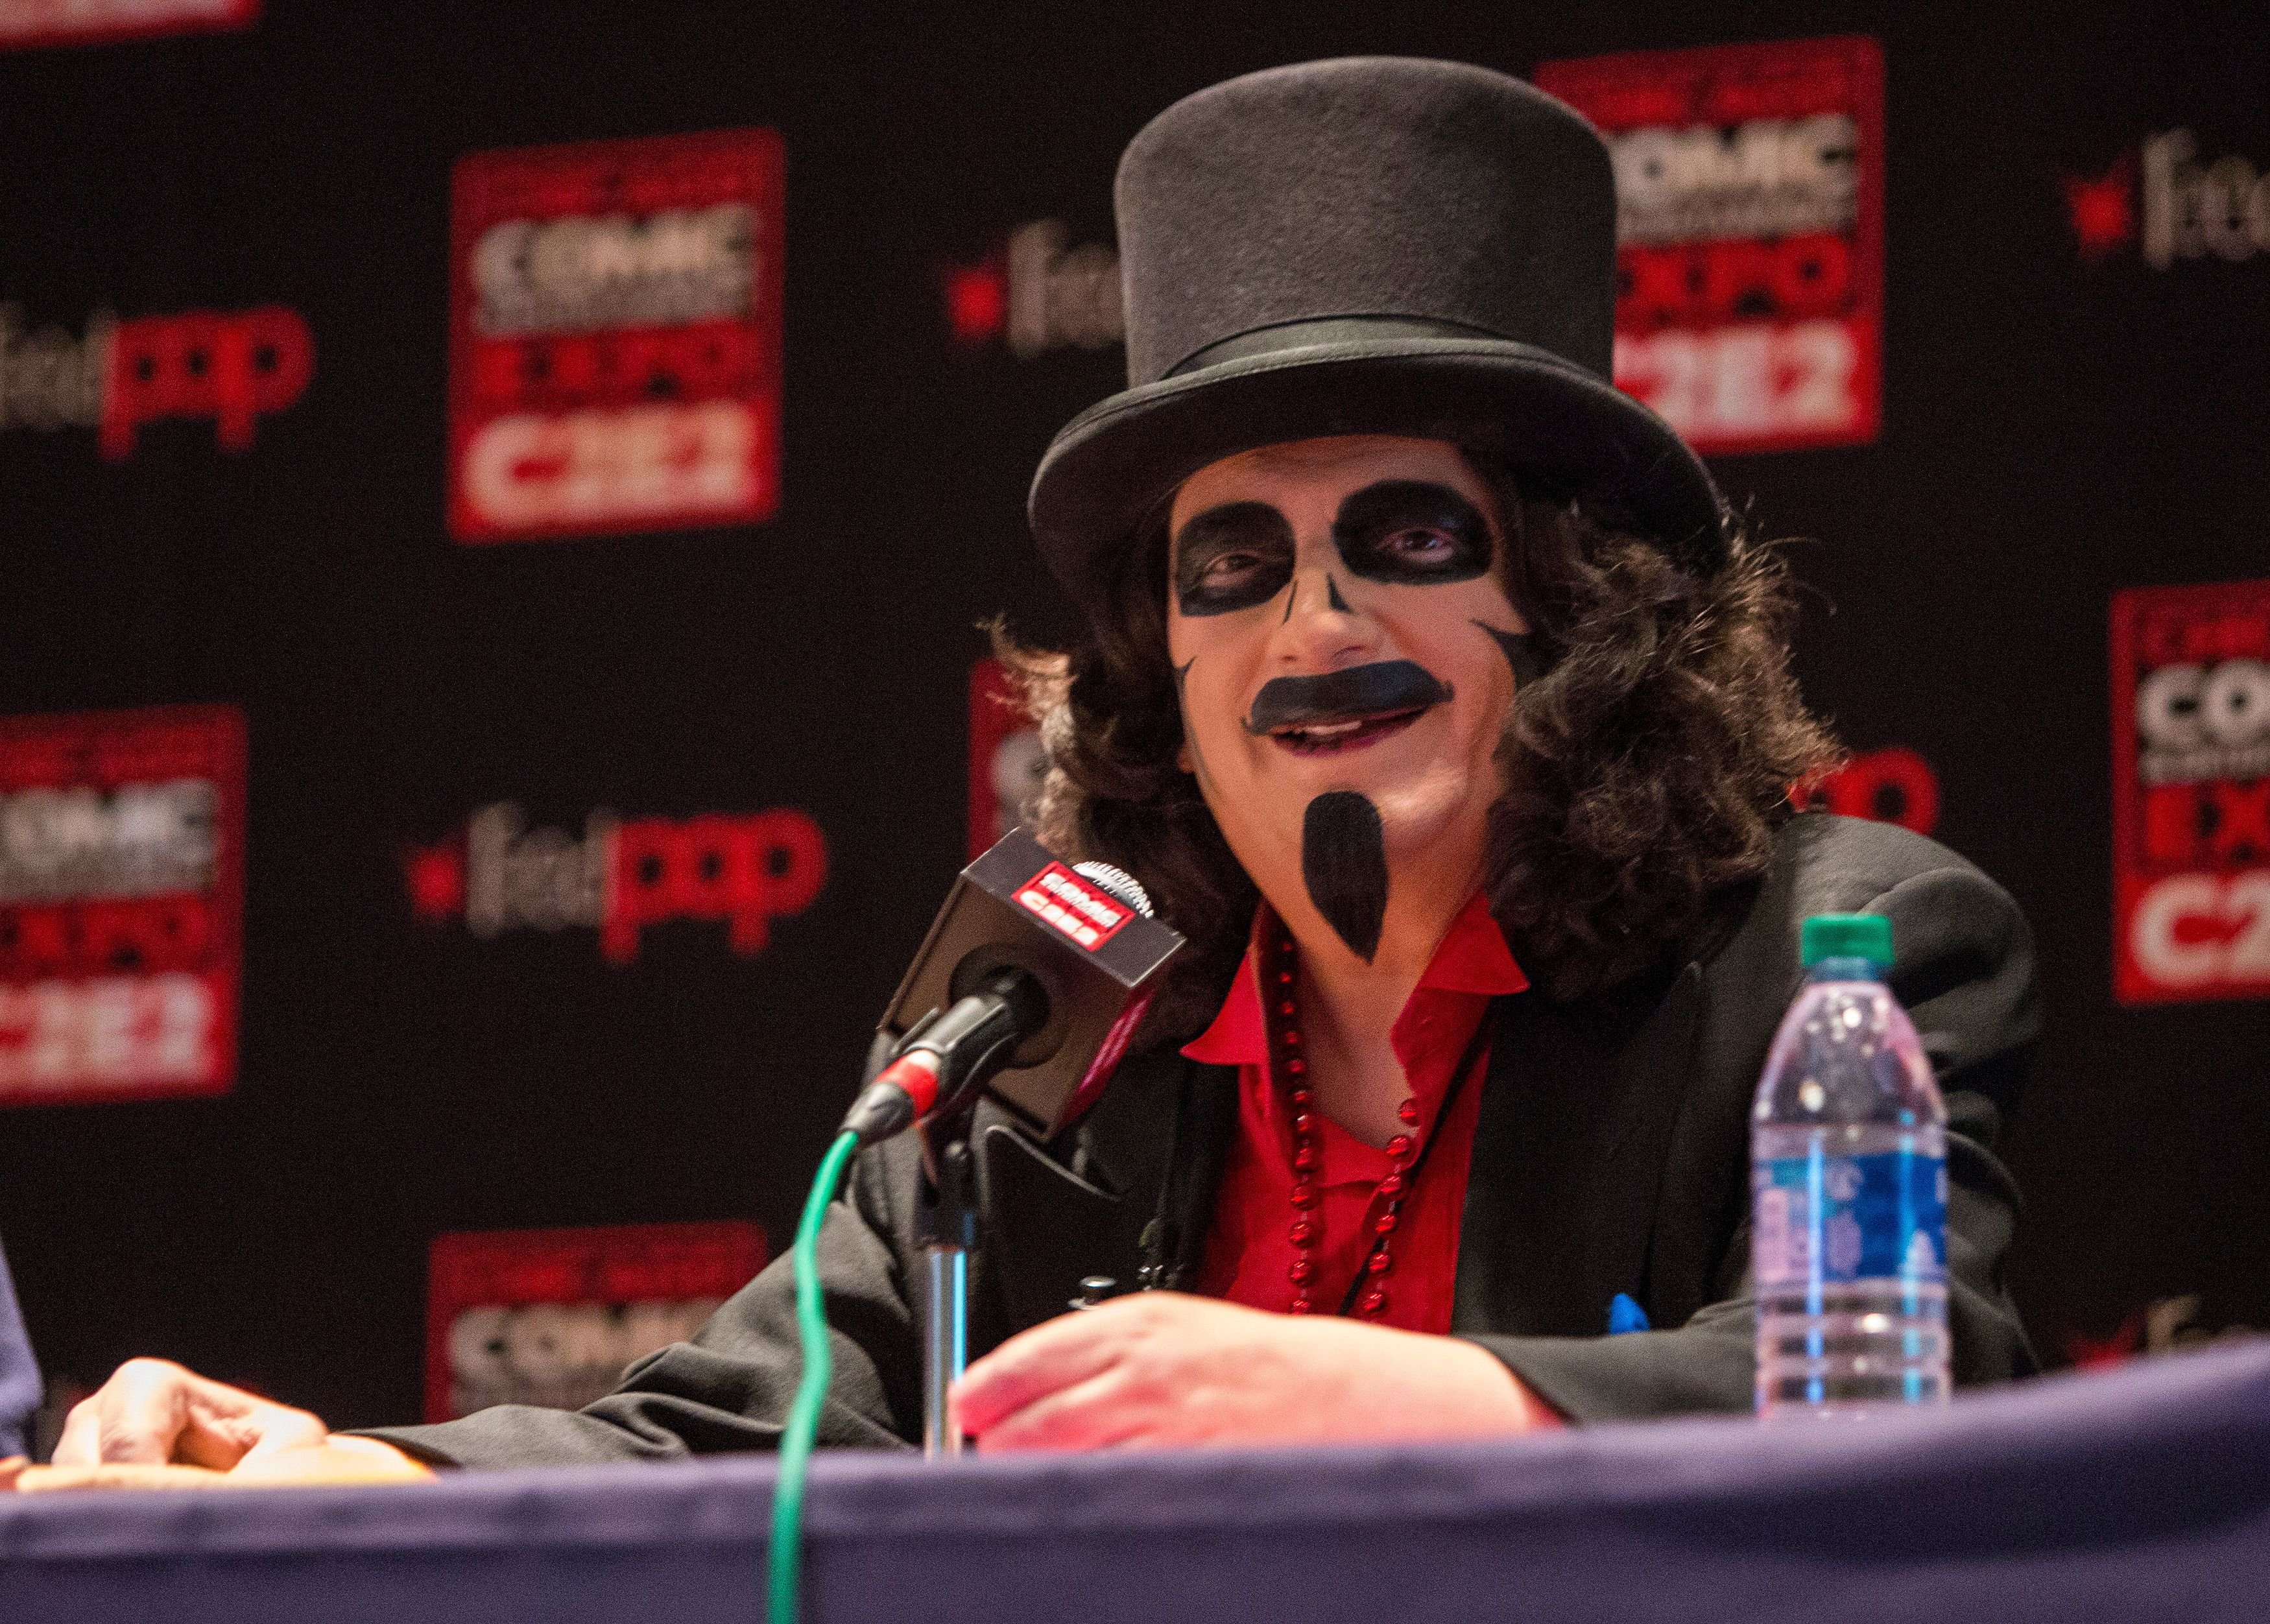 """Rich Koz of """"Son of Svengoolie"""" during the C2E2 on February 29, 2020 in Chicago, Illinois. 